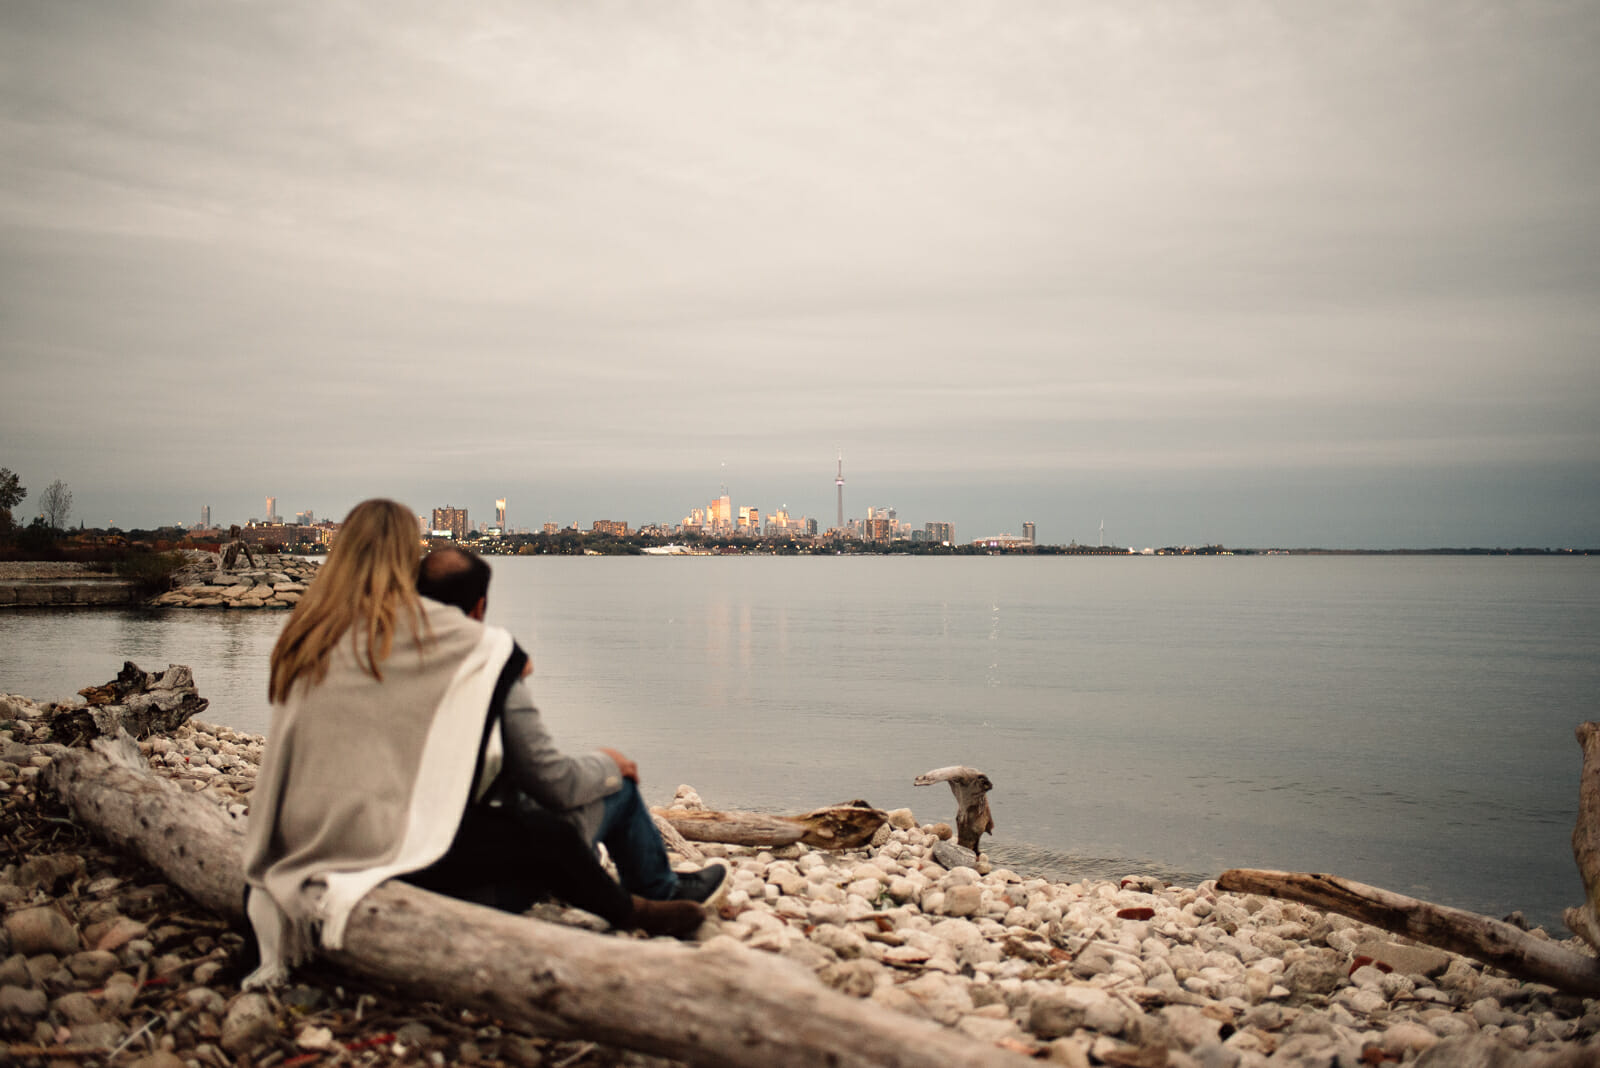 newly engaged couple looks out over lake ontario at toronto skyline